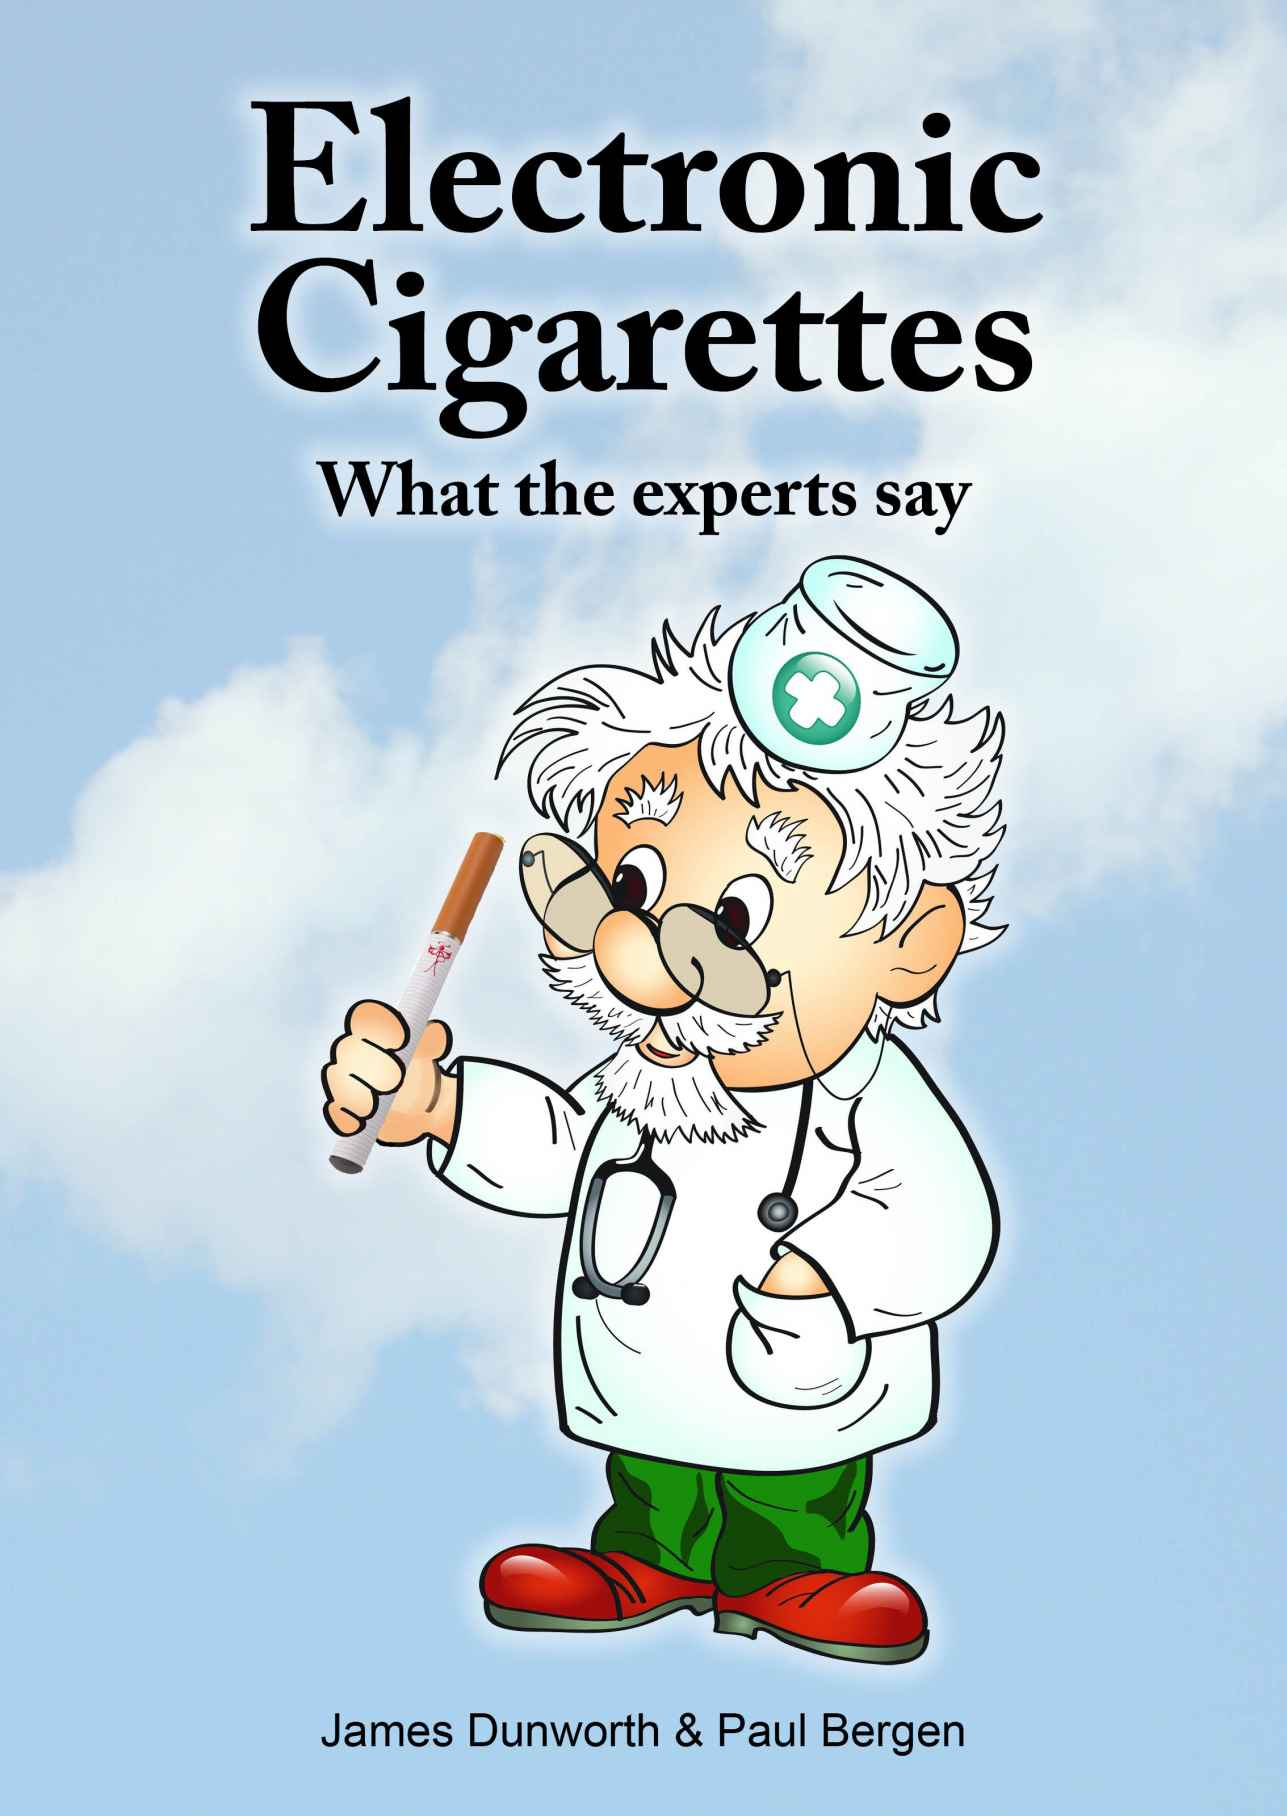 EBook: Electronic Cigarettes: What the experts say.